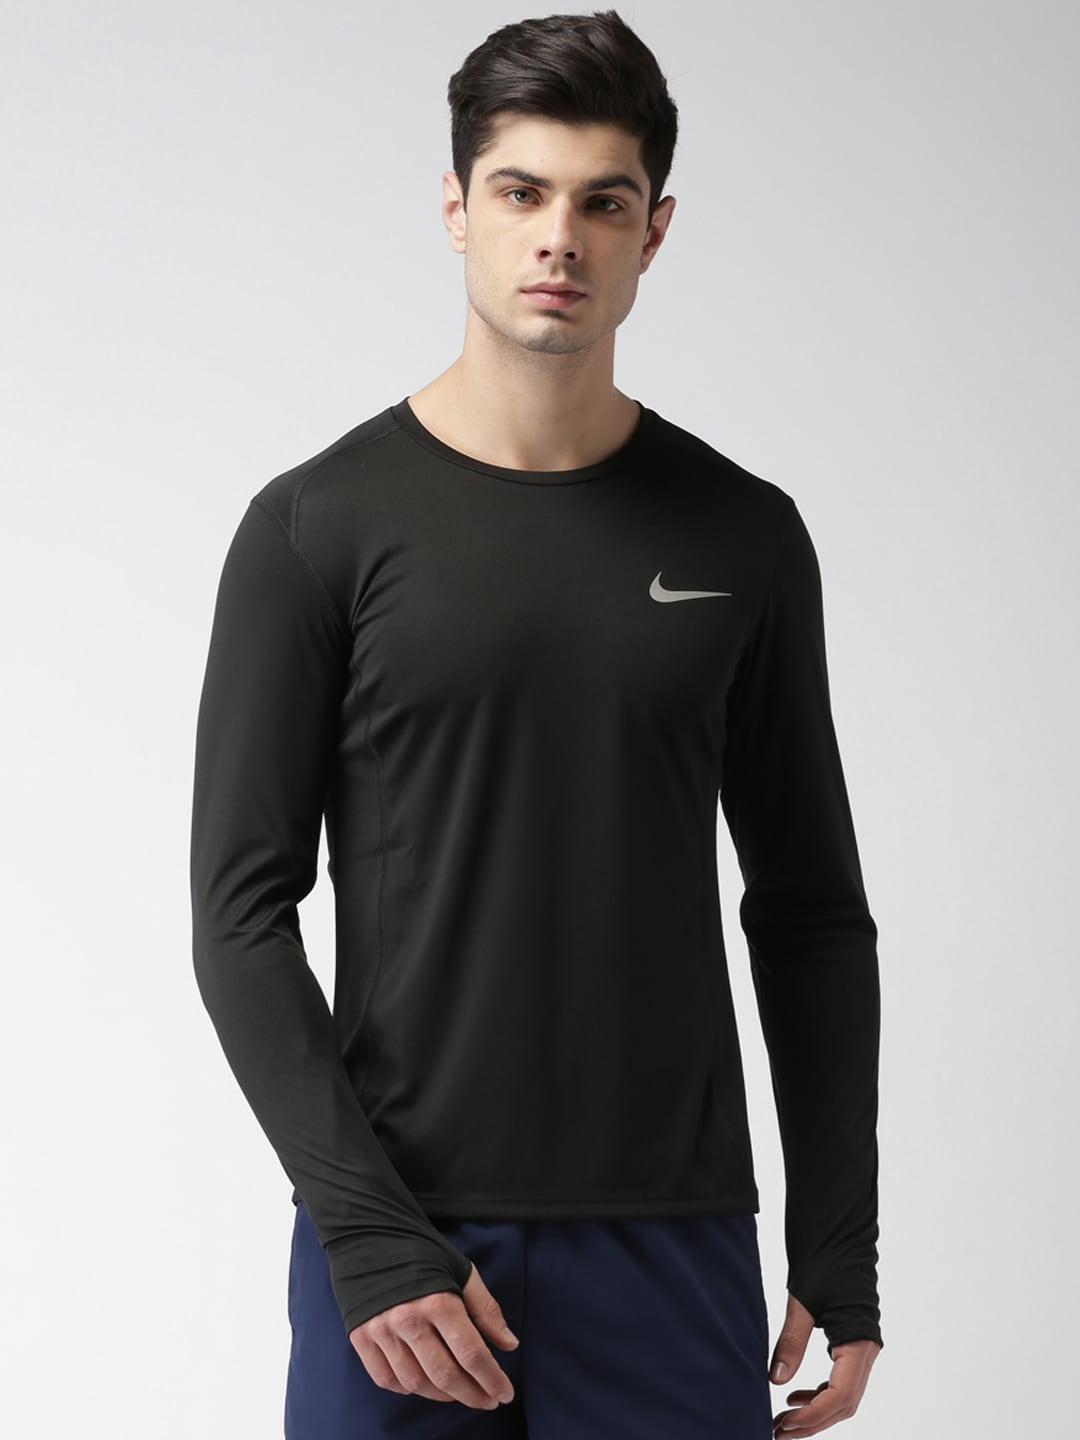 402ccc6605a7 Nike Long Sleeve Tshirts - Buy Nike Long Sleeve T Shirts For Men   Women